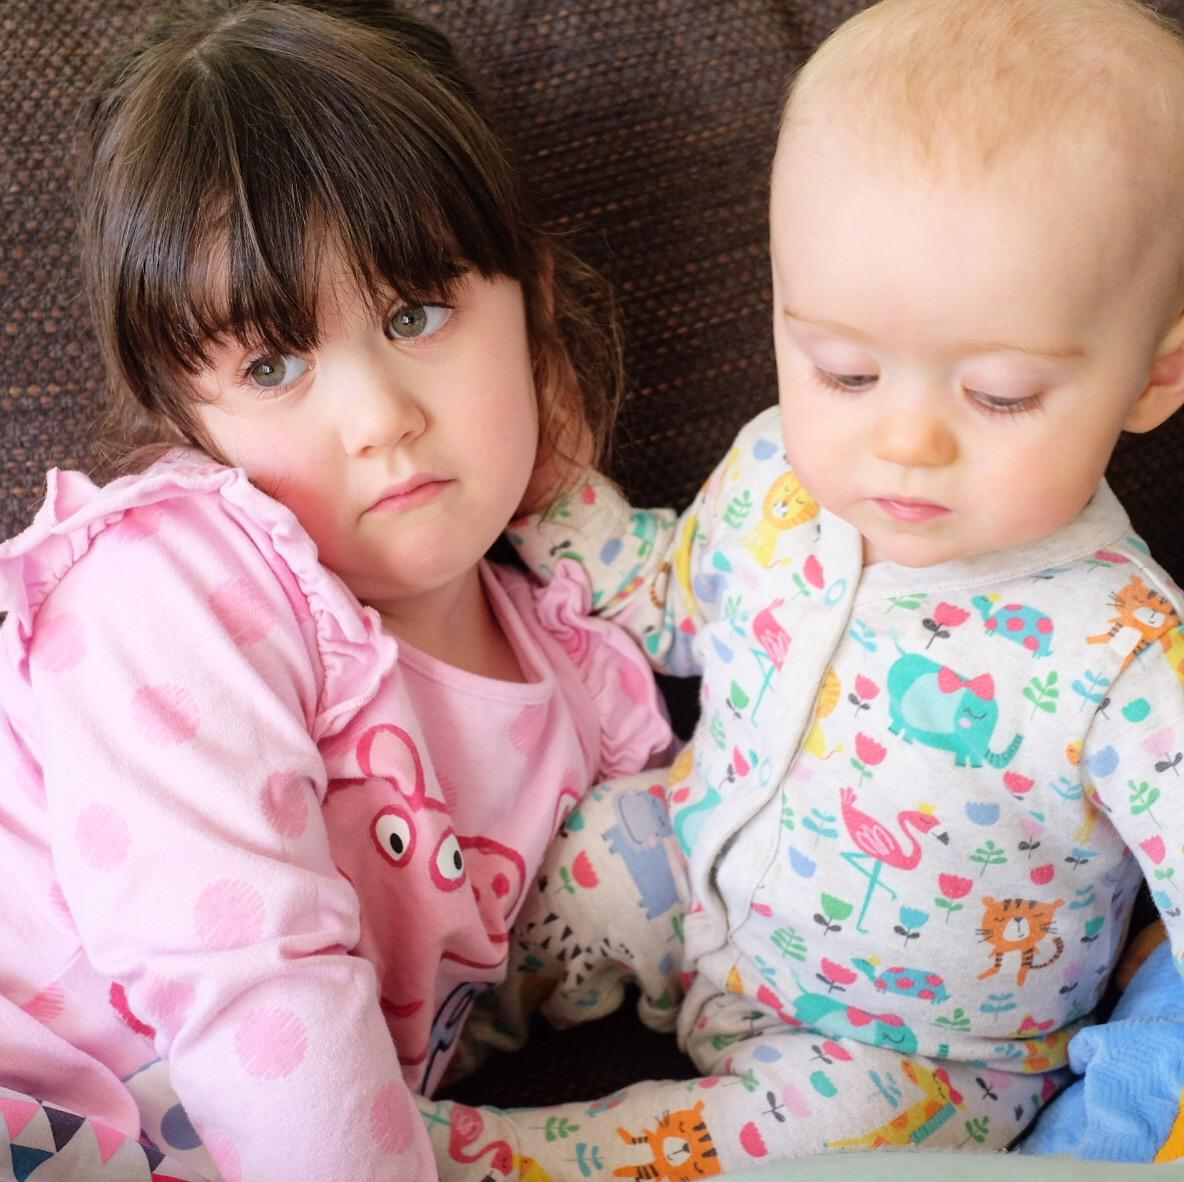 I'm a shouty mum - two children on the sofa